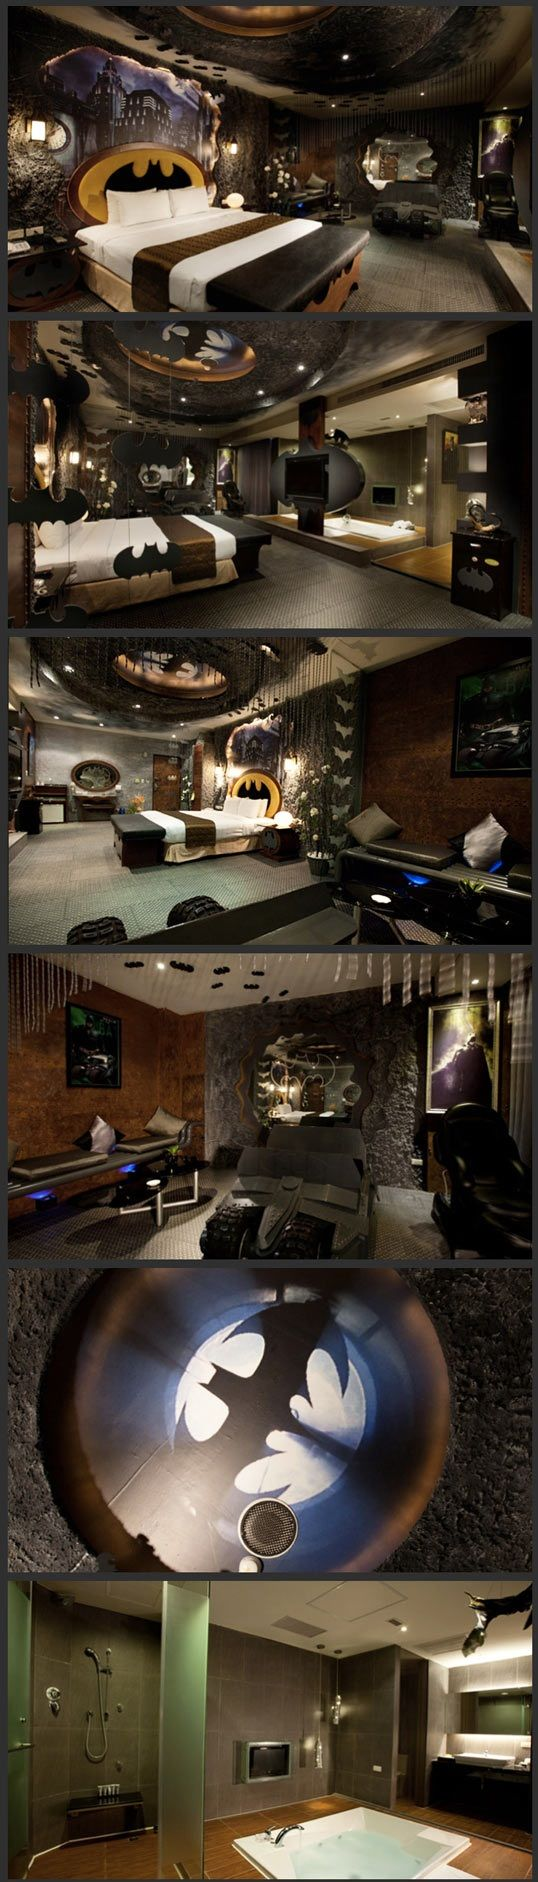 Taiwan Hotels In And Batman On Pinterest